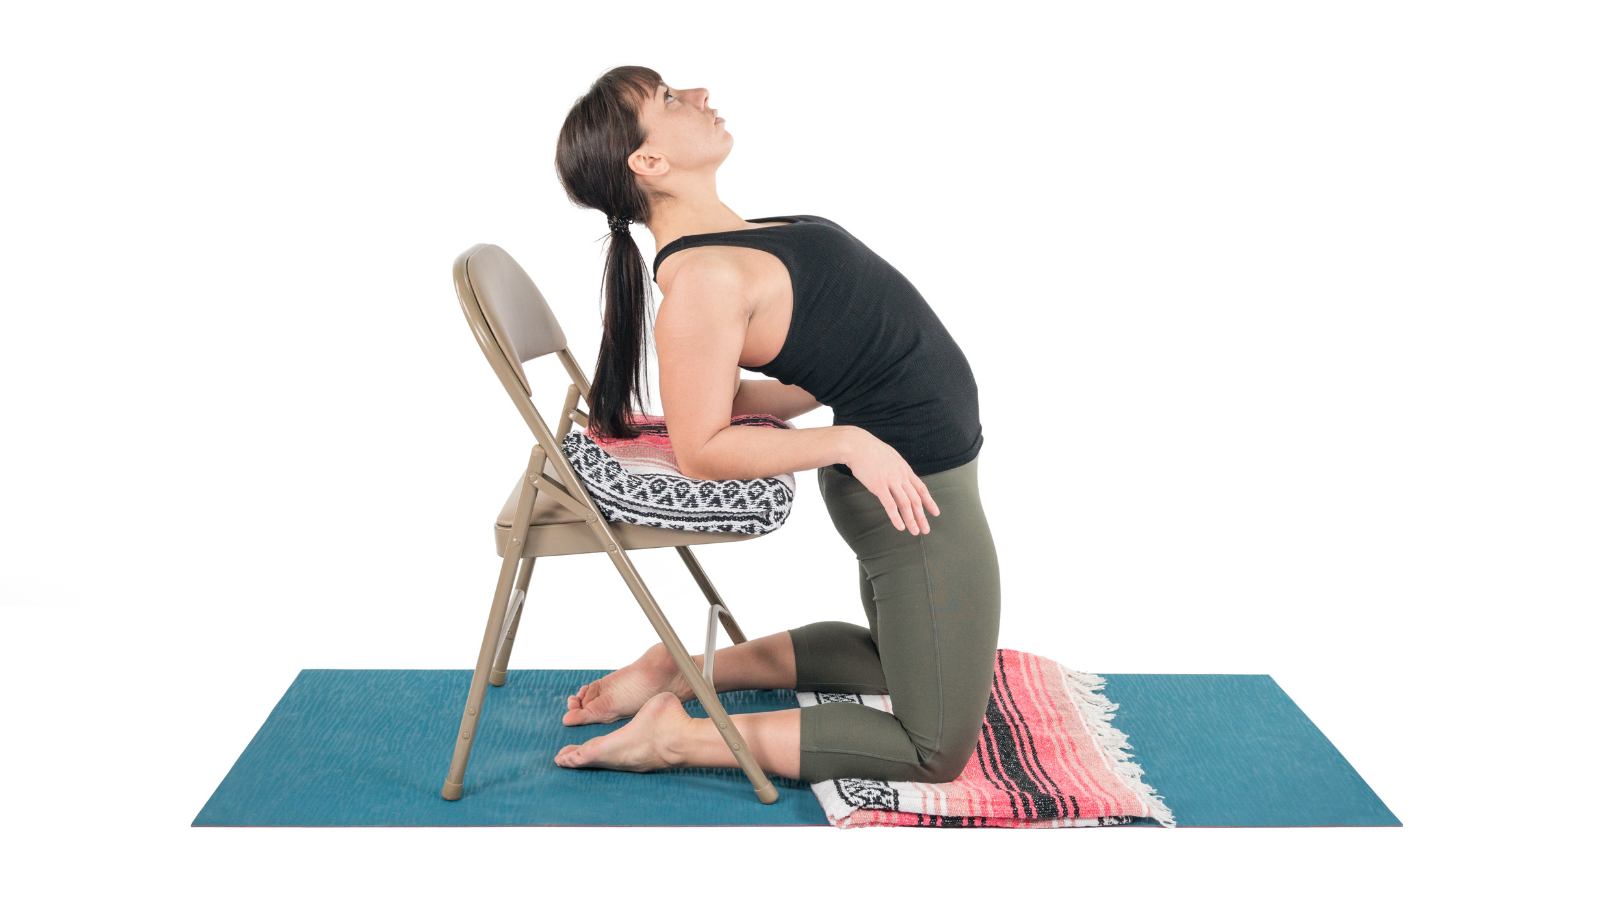 Practicing Camel Pose with the assistance of a chair and props to ease into a backbend and the opening of the heart chakra